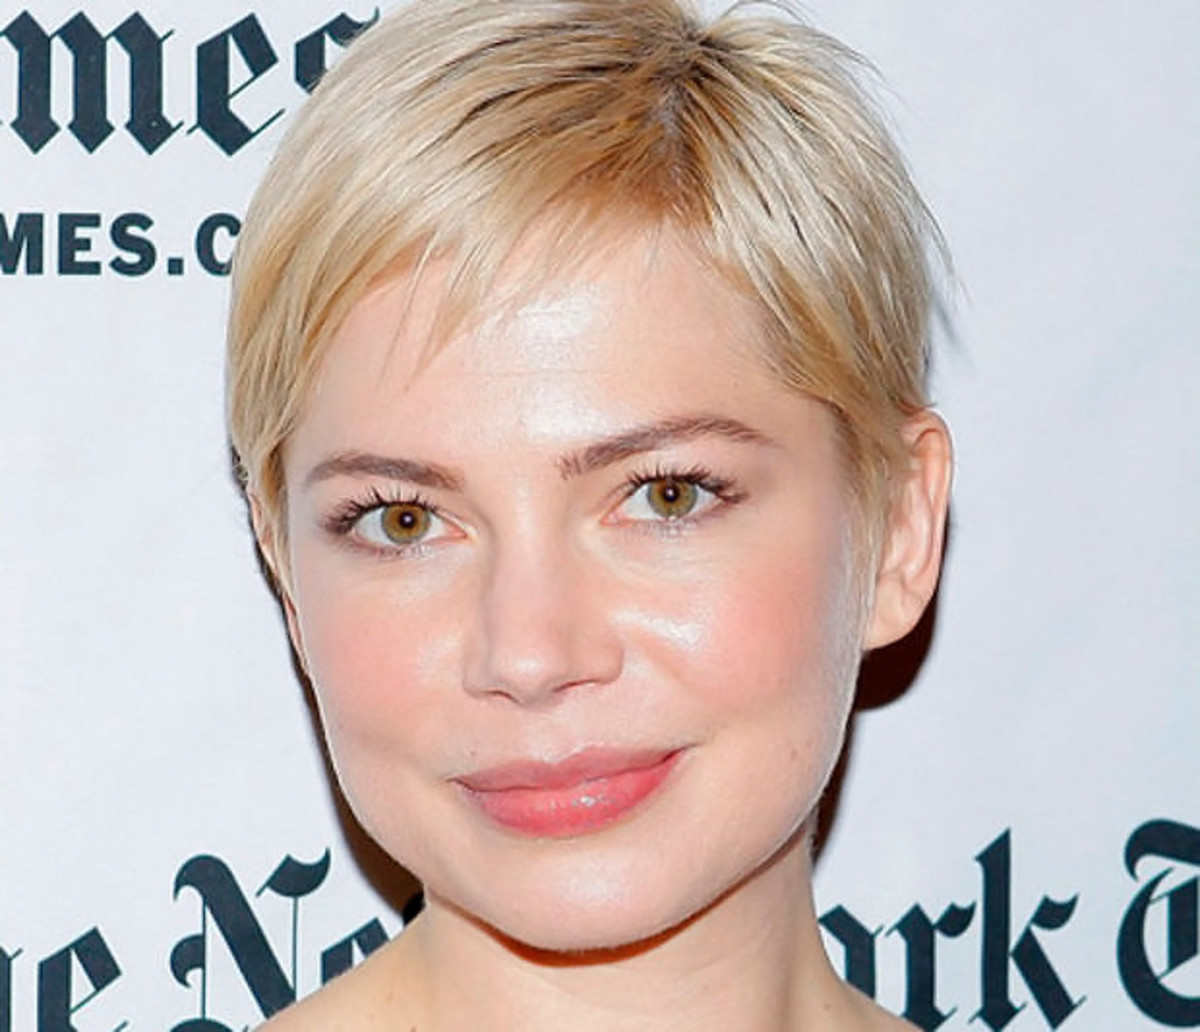 5 steps to getting Michelle Williams' gorgeous skin glow